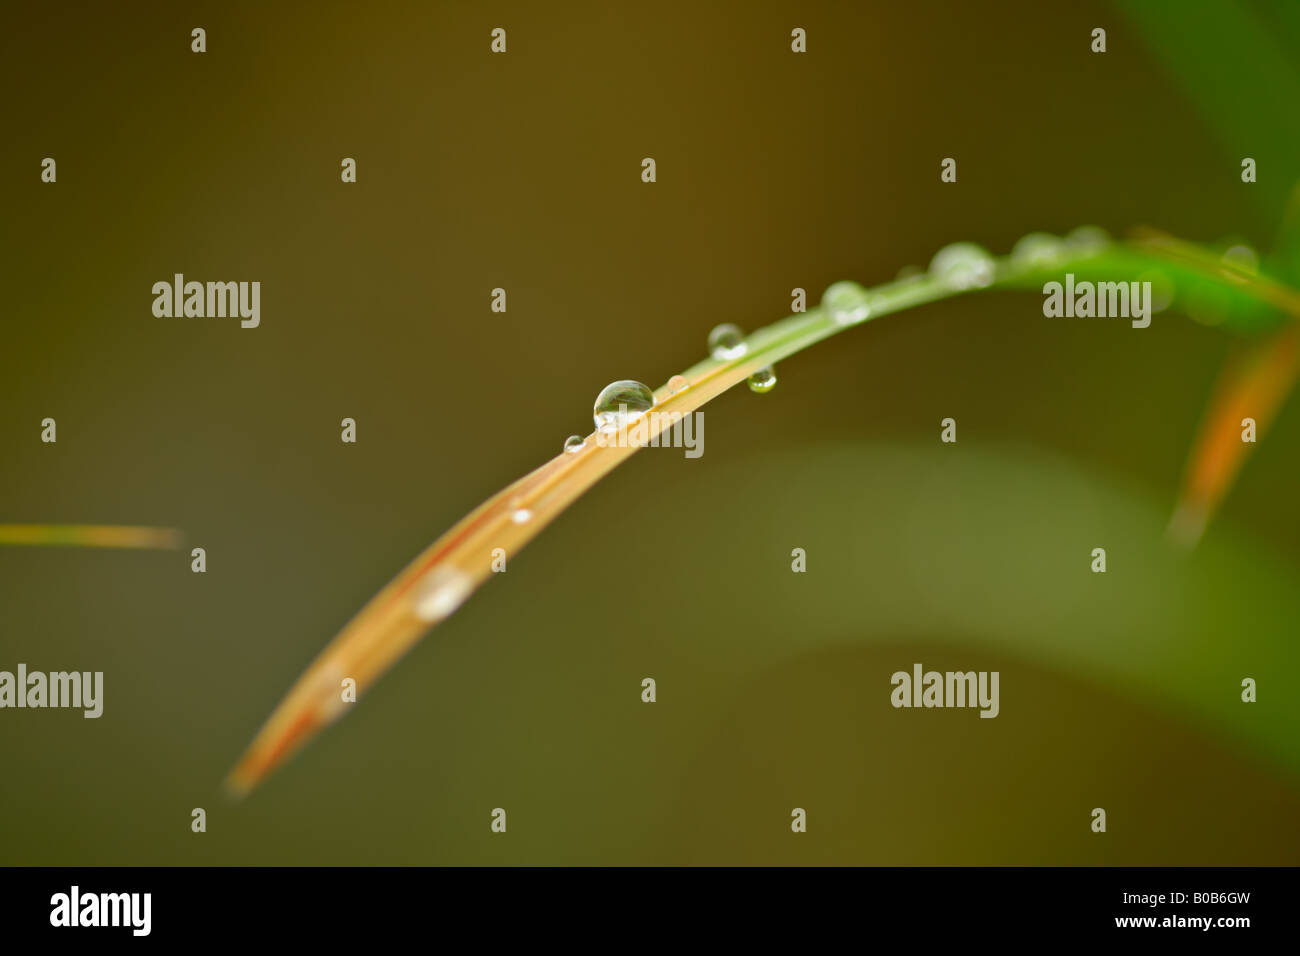 Dewdrops on a grass - Stock Image